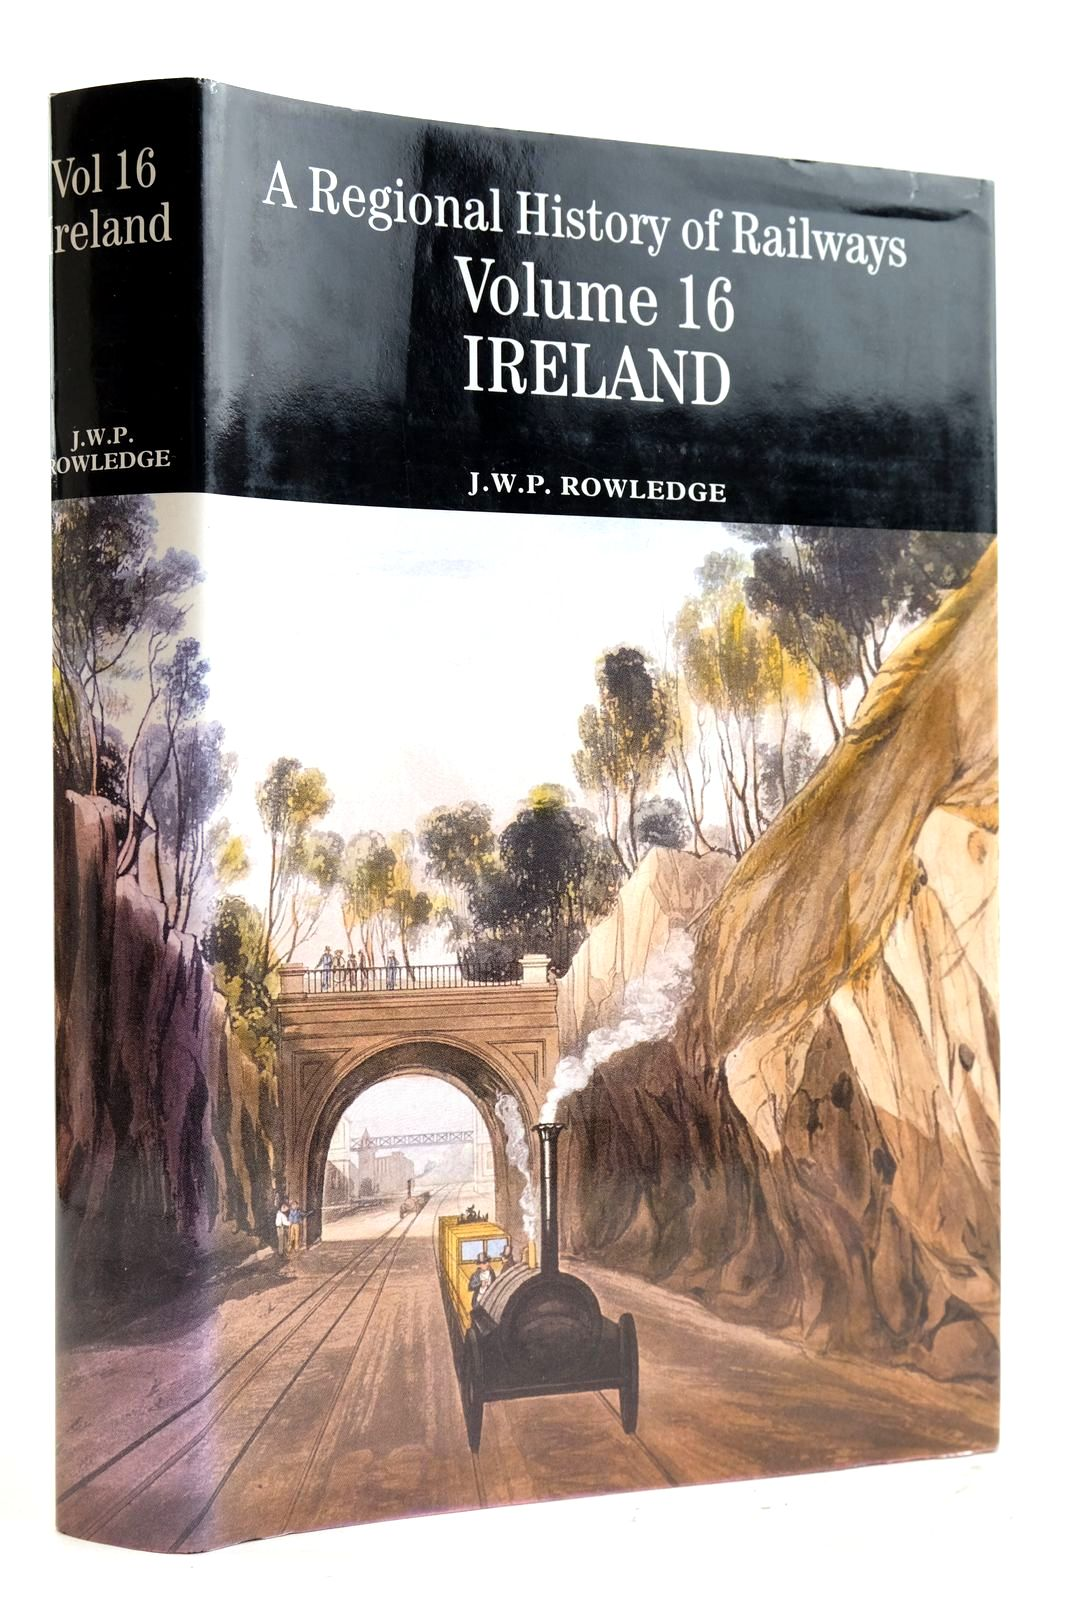 Photo of A REGIONAL HISTORY OF RAILWAYS VOLUME 16 IRELAND- Stock Number: 2133047